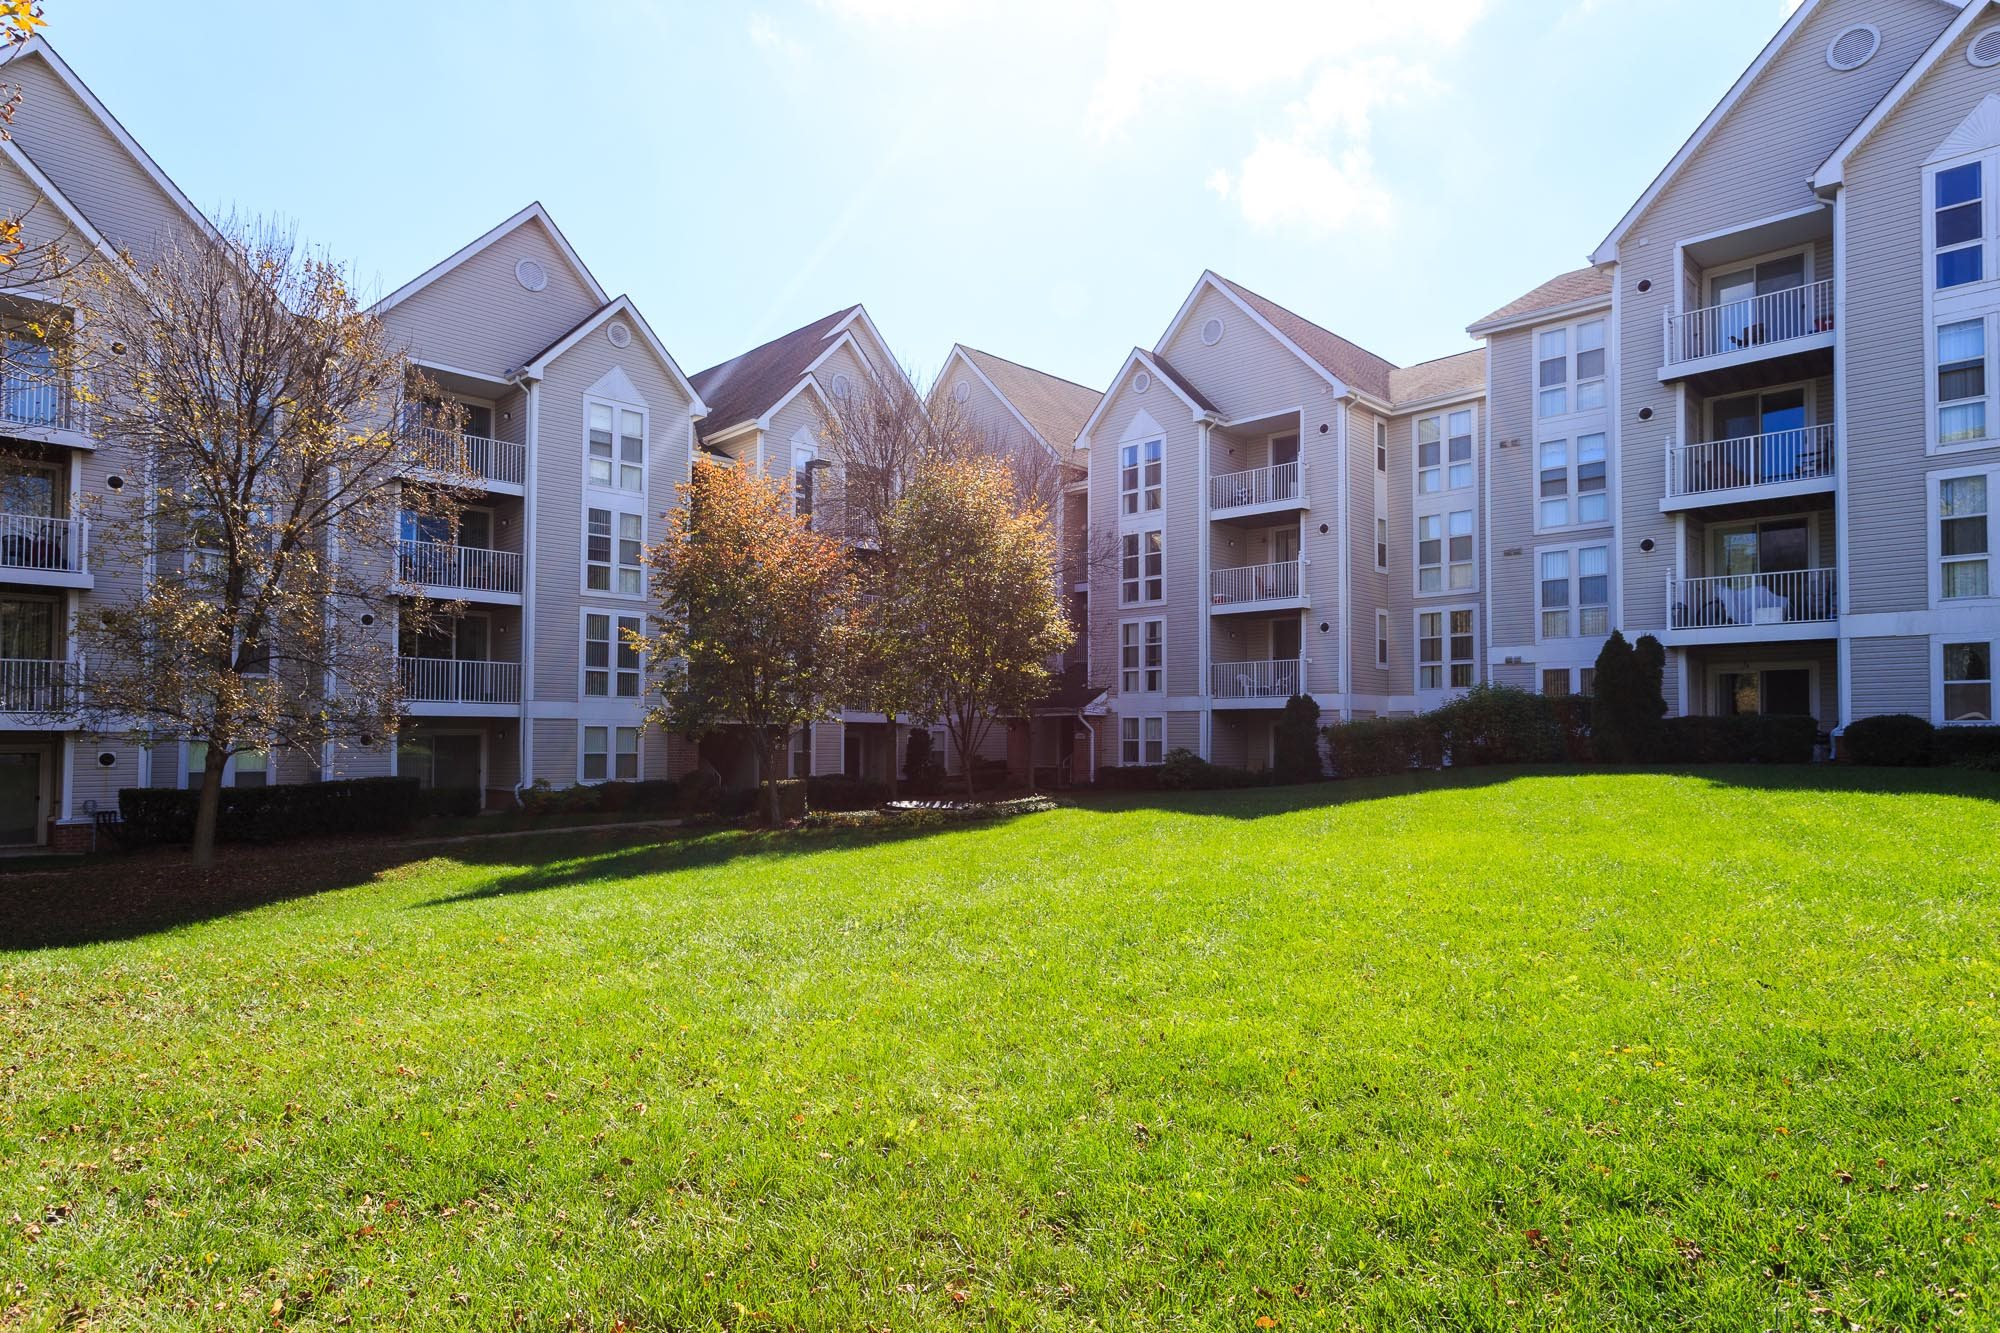 Acres Of Well Landscaped Grounds With Walking Trails at The Residences at the Manor Apartments, Frederick, Maryland